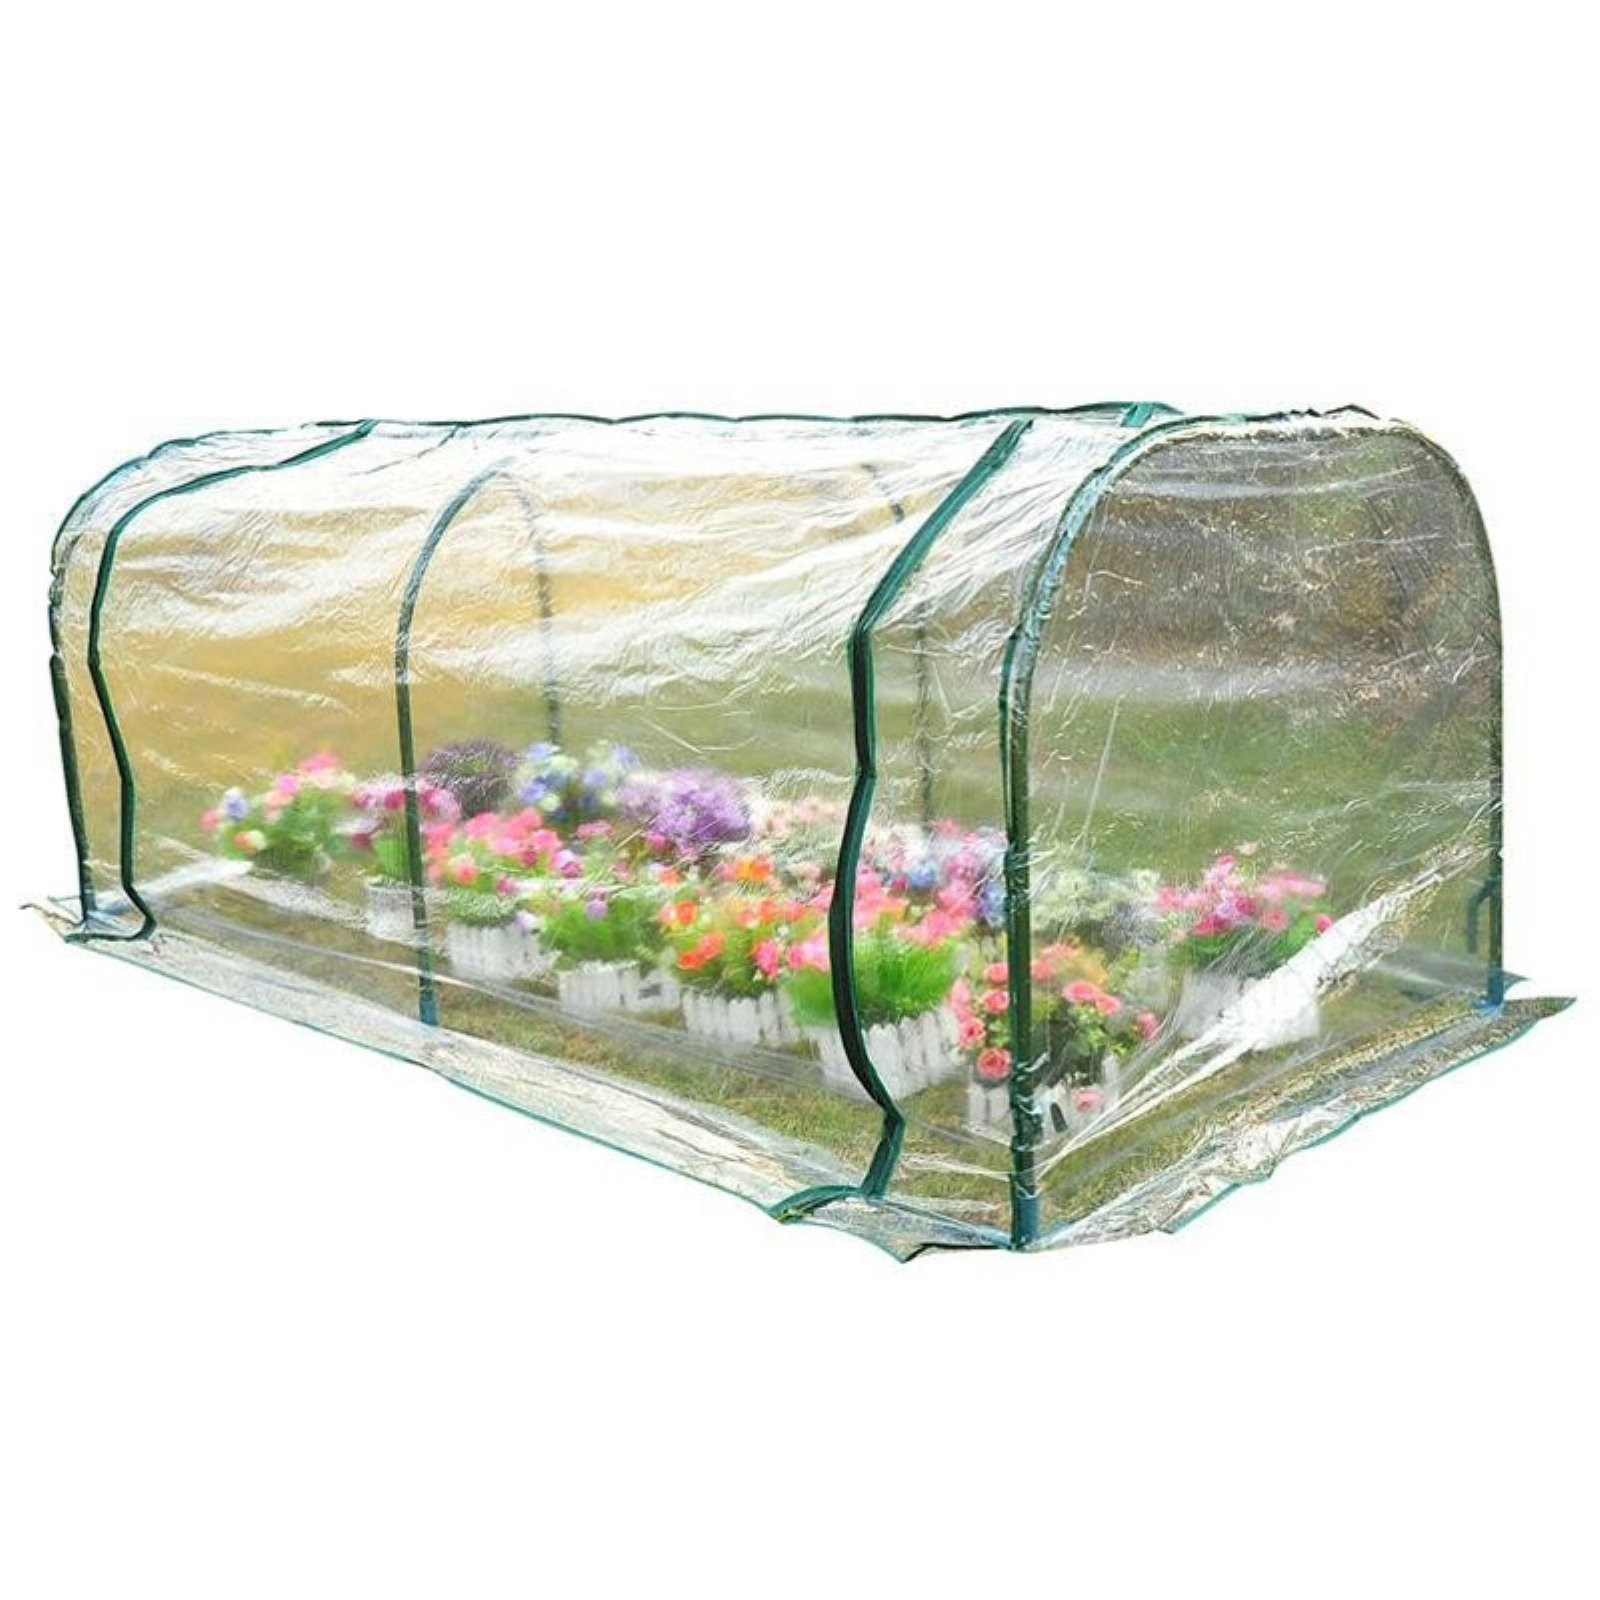 Outsunny Portable 7 x 3 ft. Backyard Greenhouse by Aosom